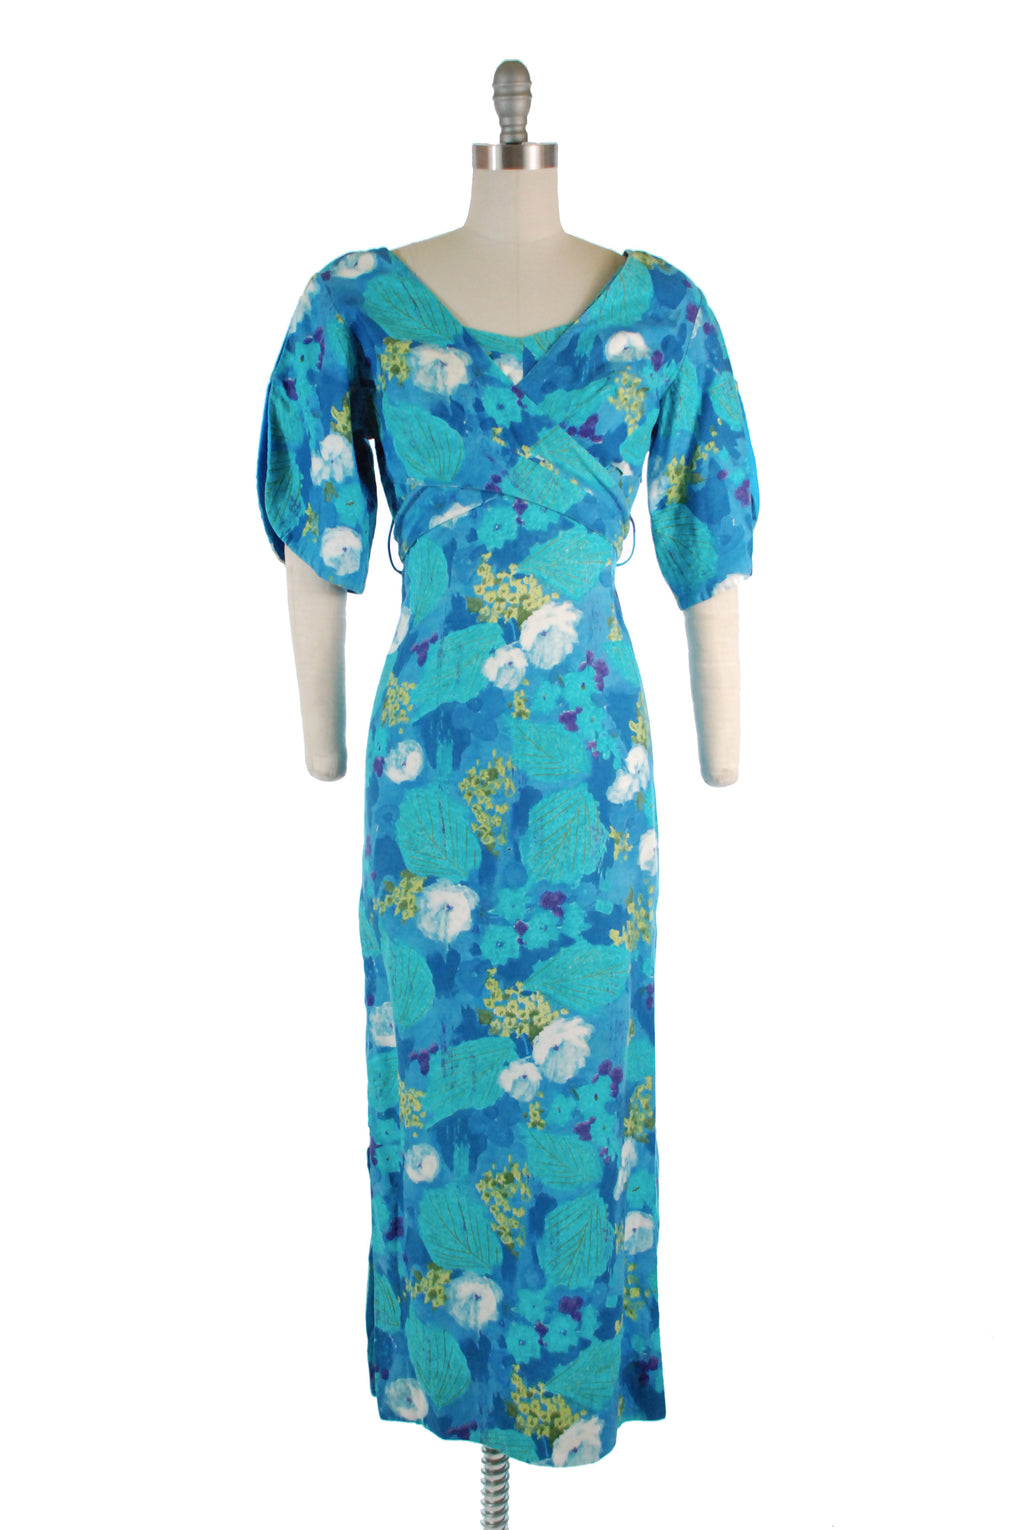 Stunning 1960s Adjustable Bust Hawaiian Dress in Periwinkle and Teal